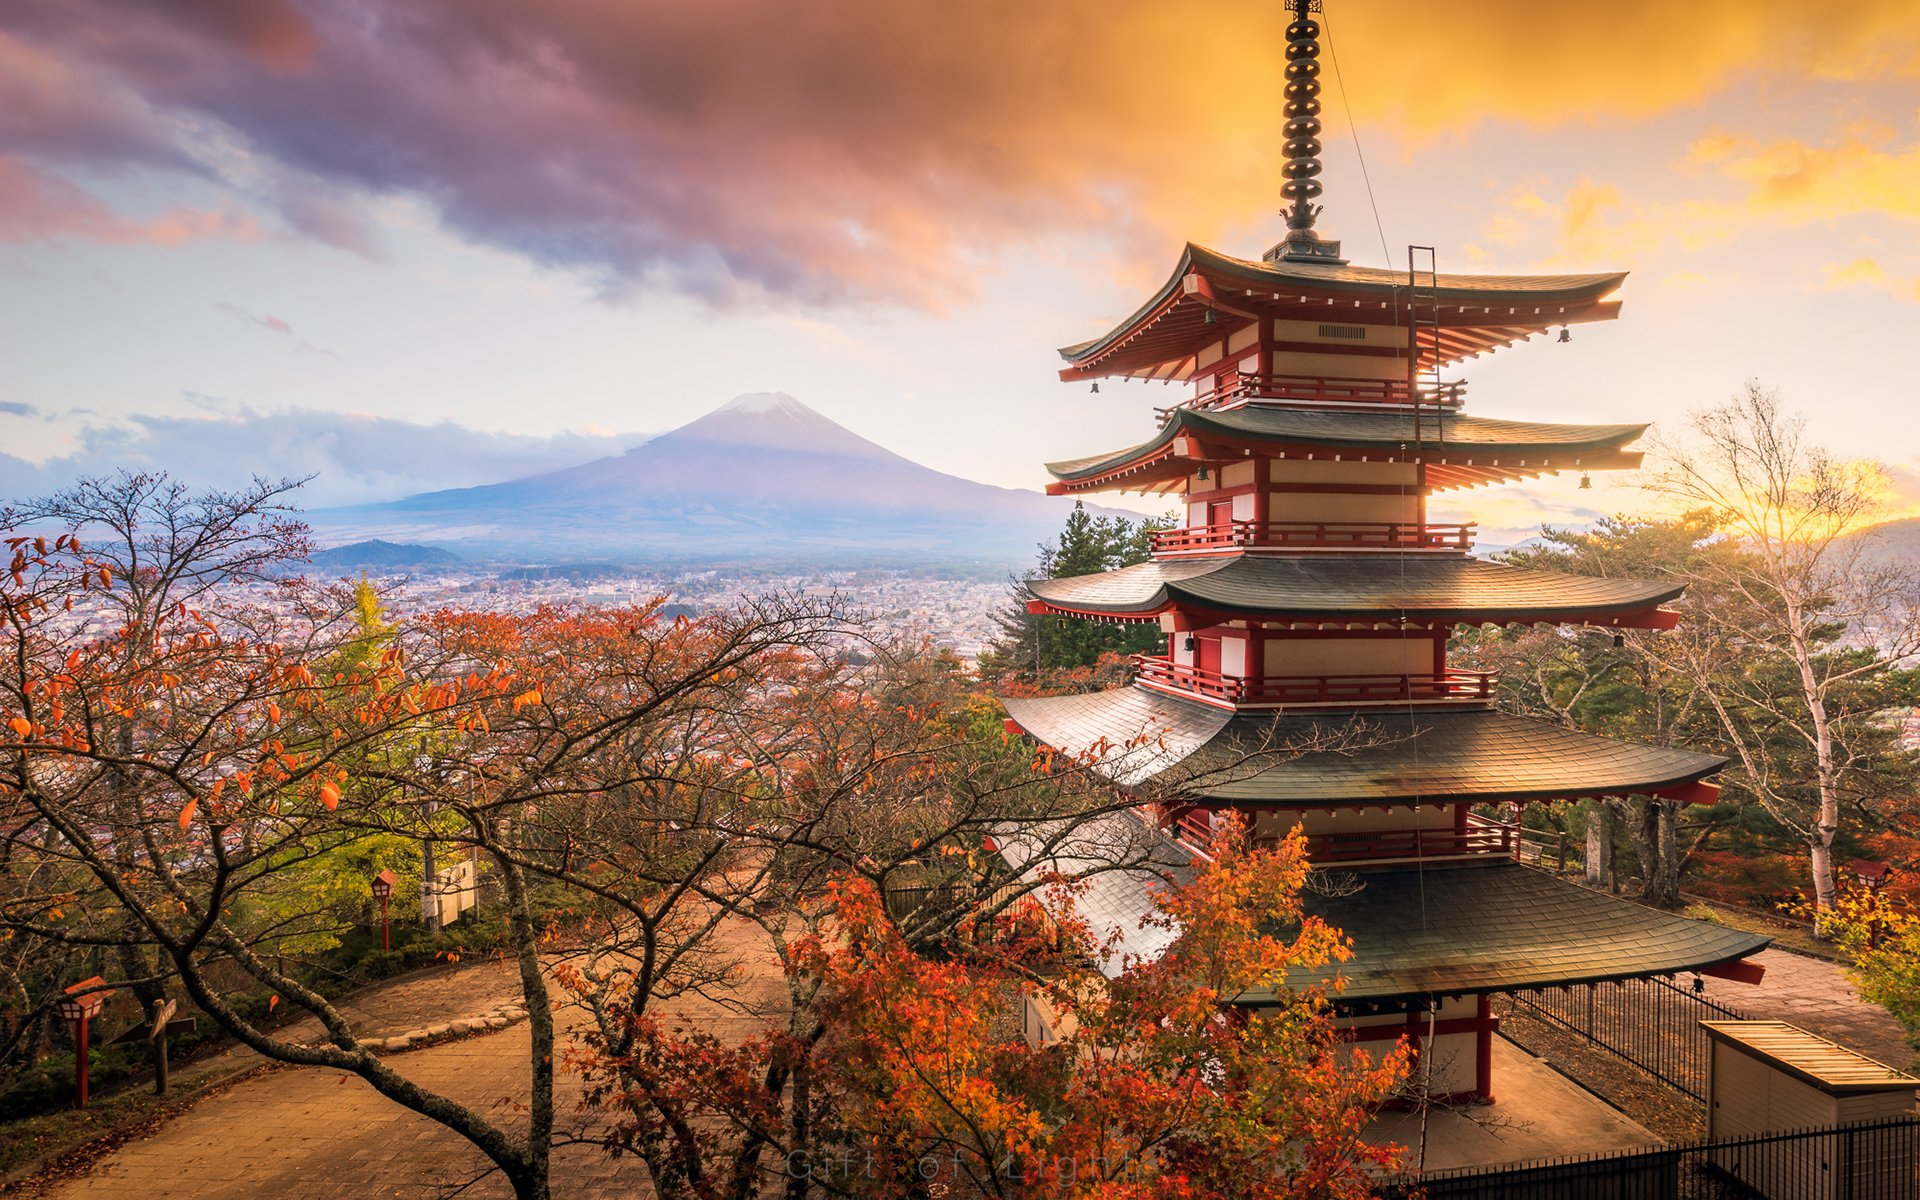 Fall Hd Wallpaper 1280x1024 Asian Architecture Full Hd Wallpaper And Background Image